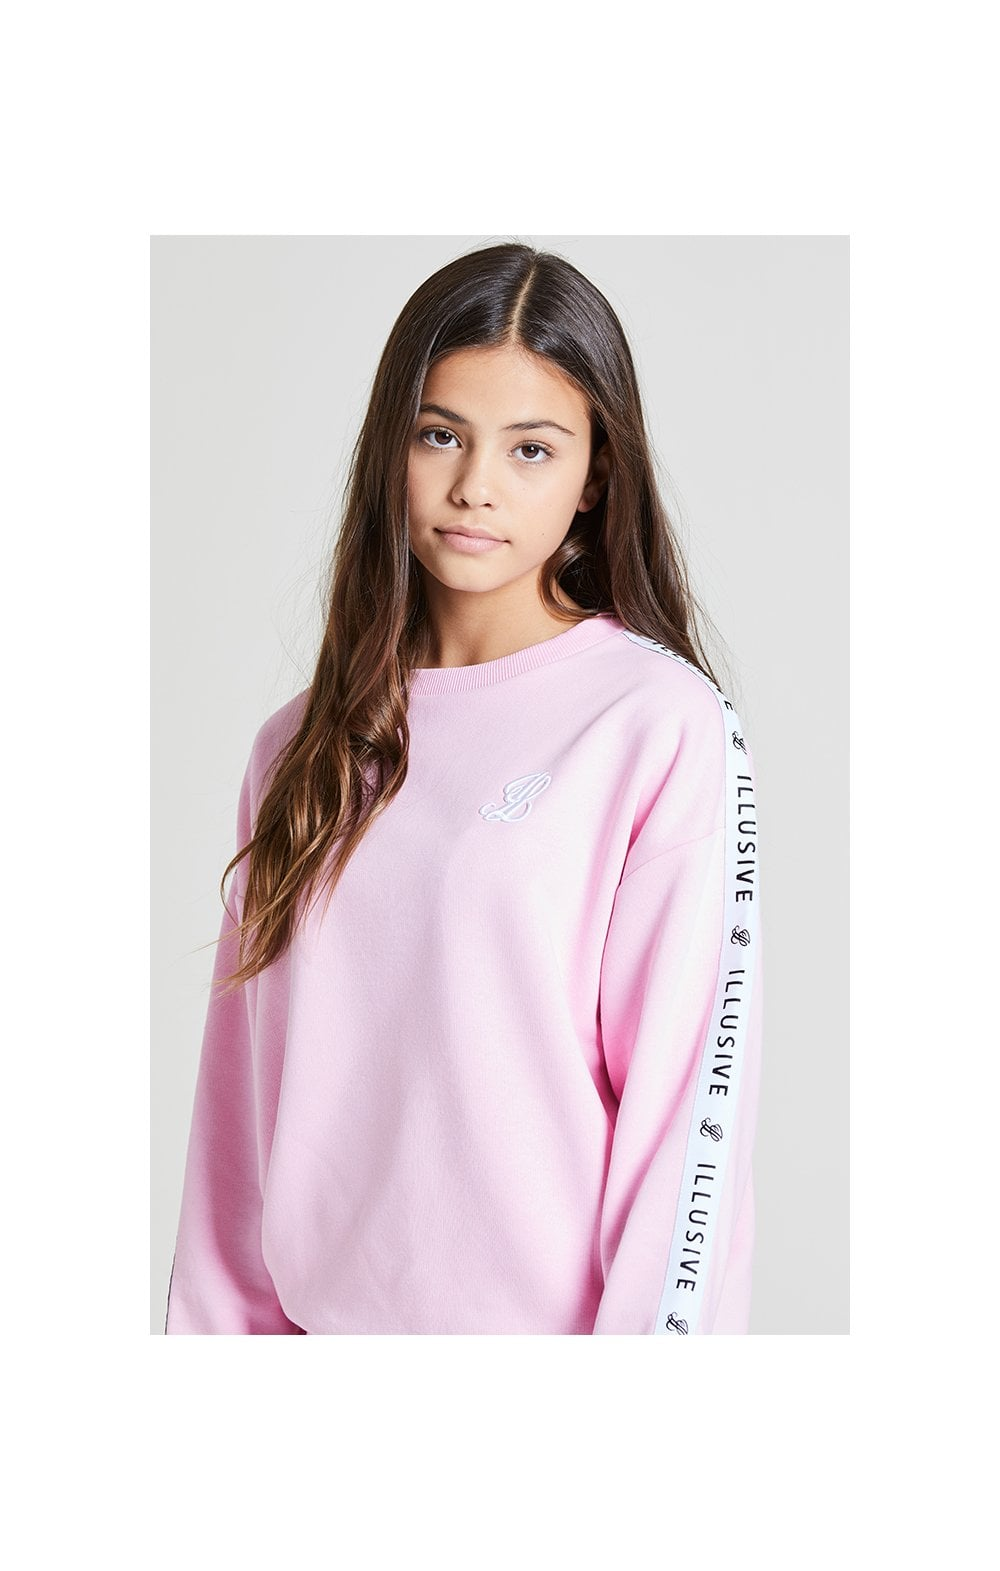 Illusive London Crew Neck Sweater - Pink